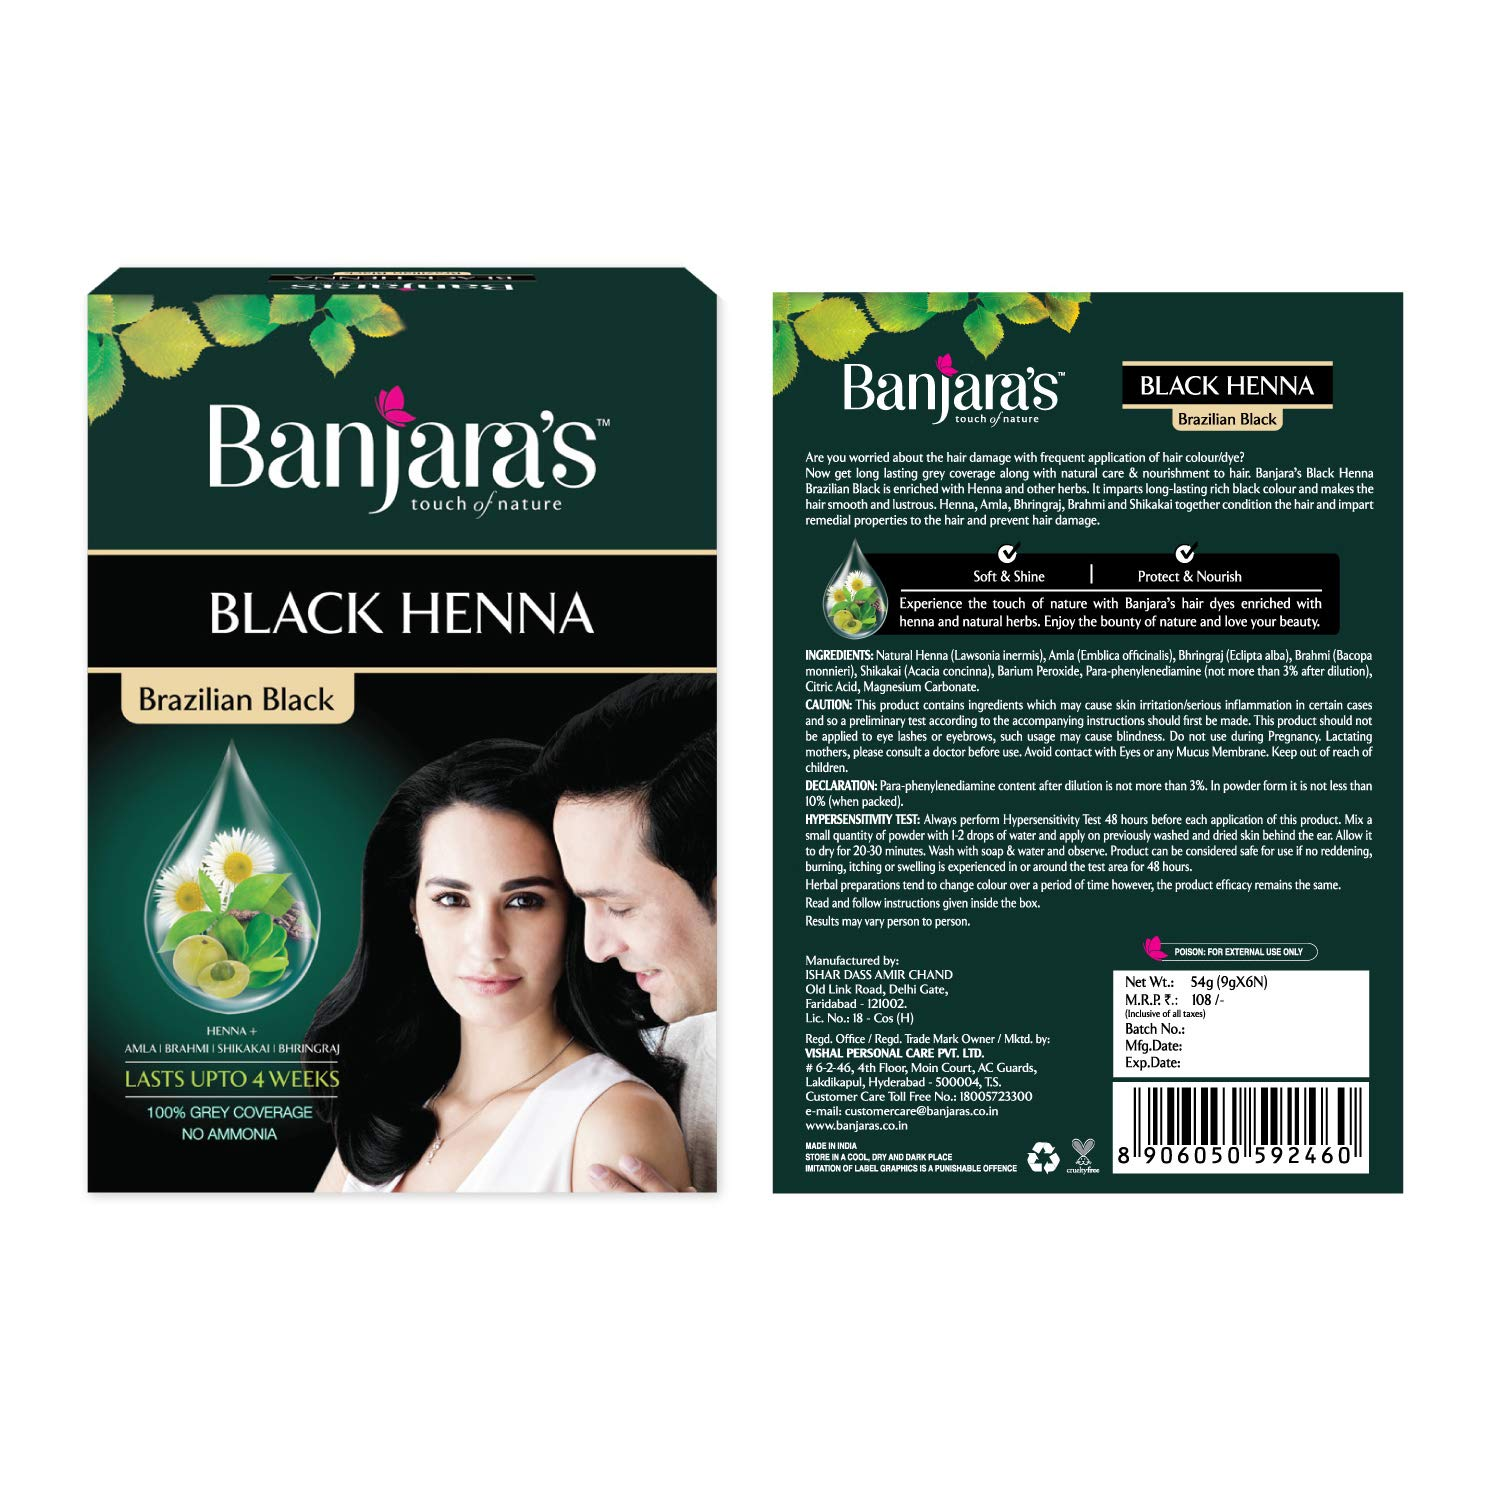 Banjara's Black Henna Brazilian Black 54 gm Rich black hair colour - No ammonia